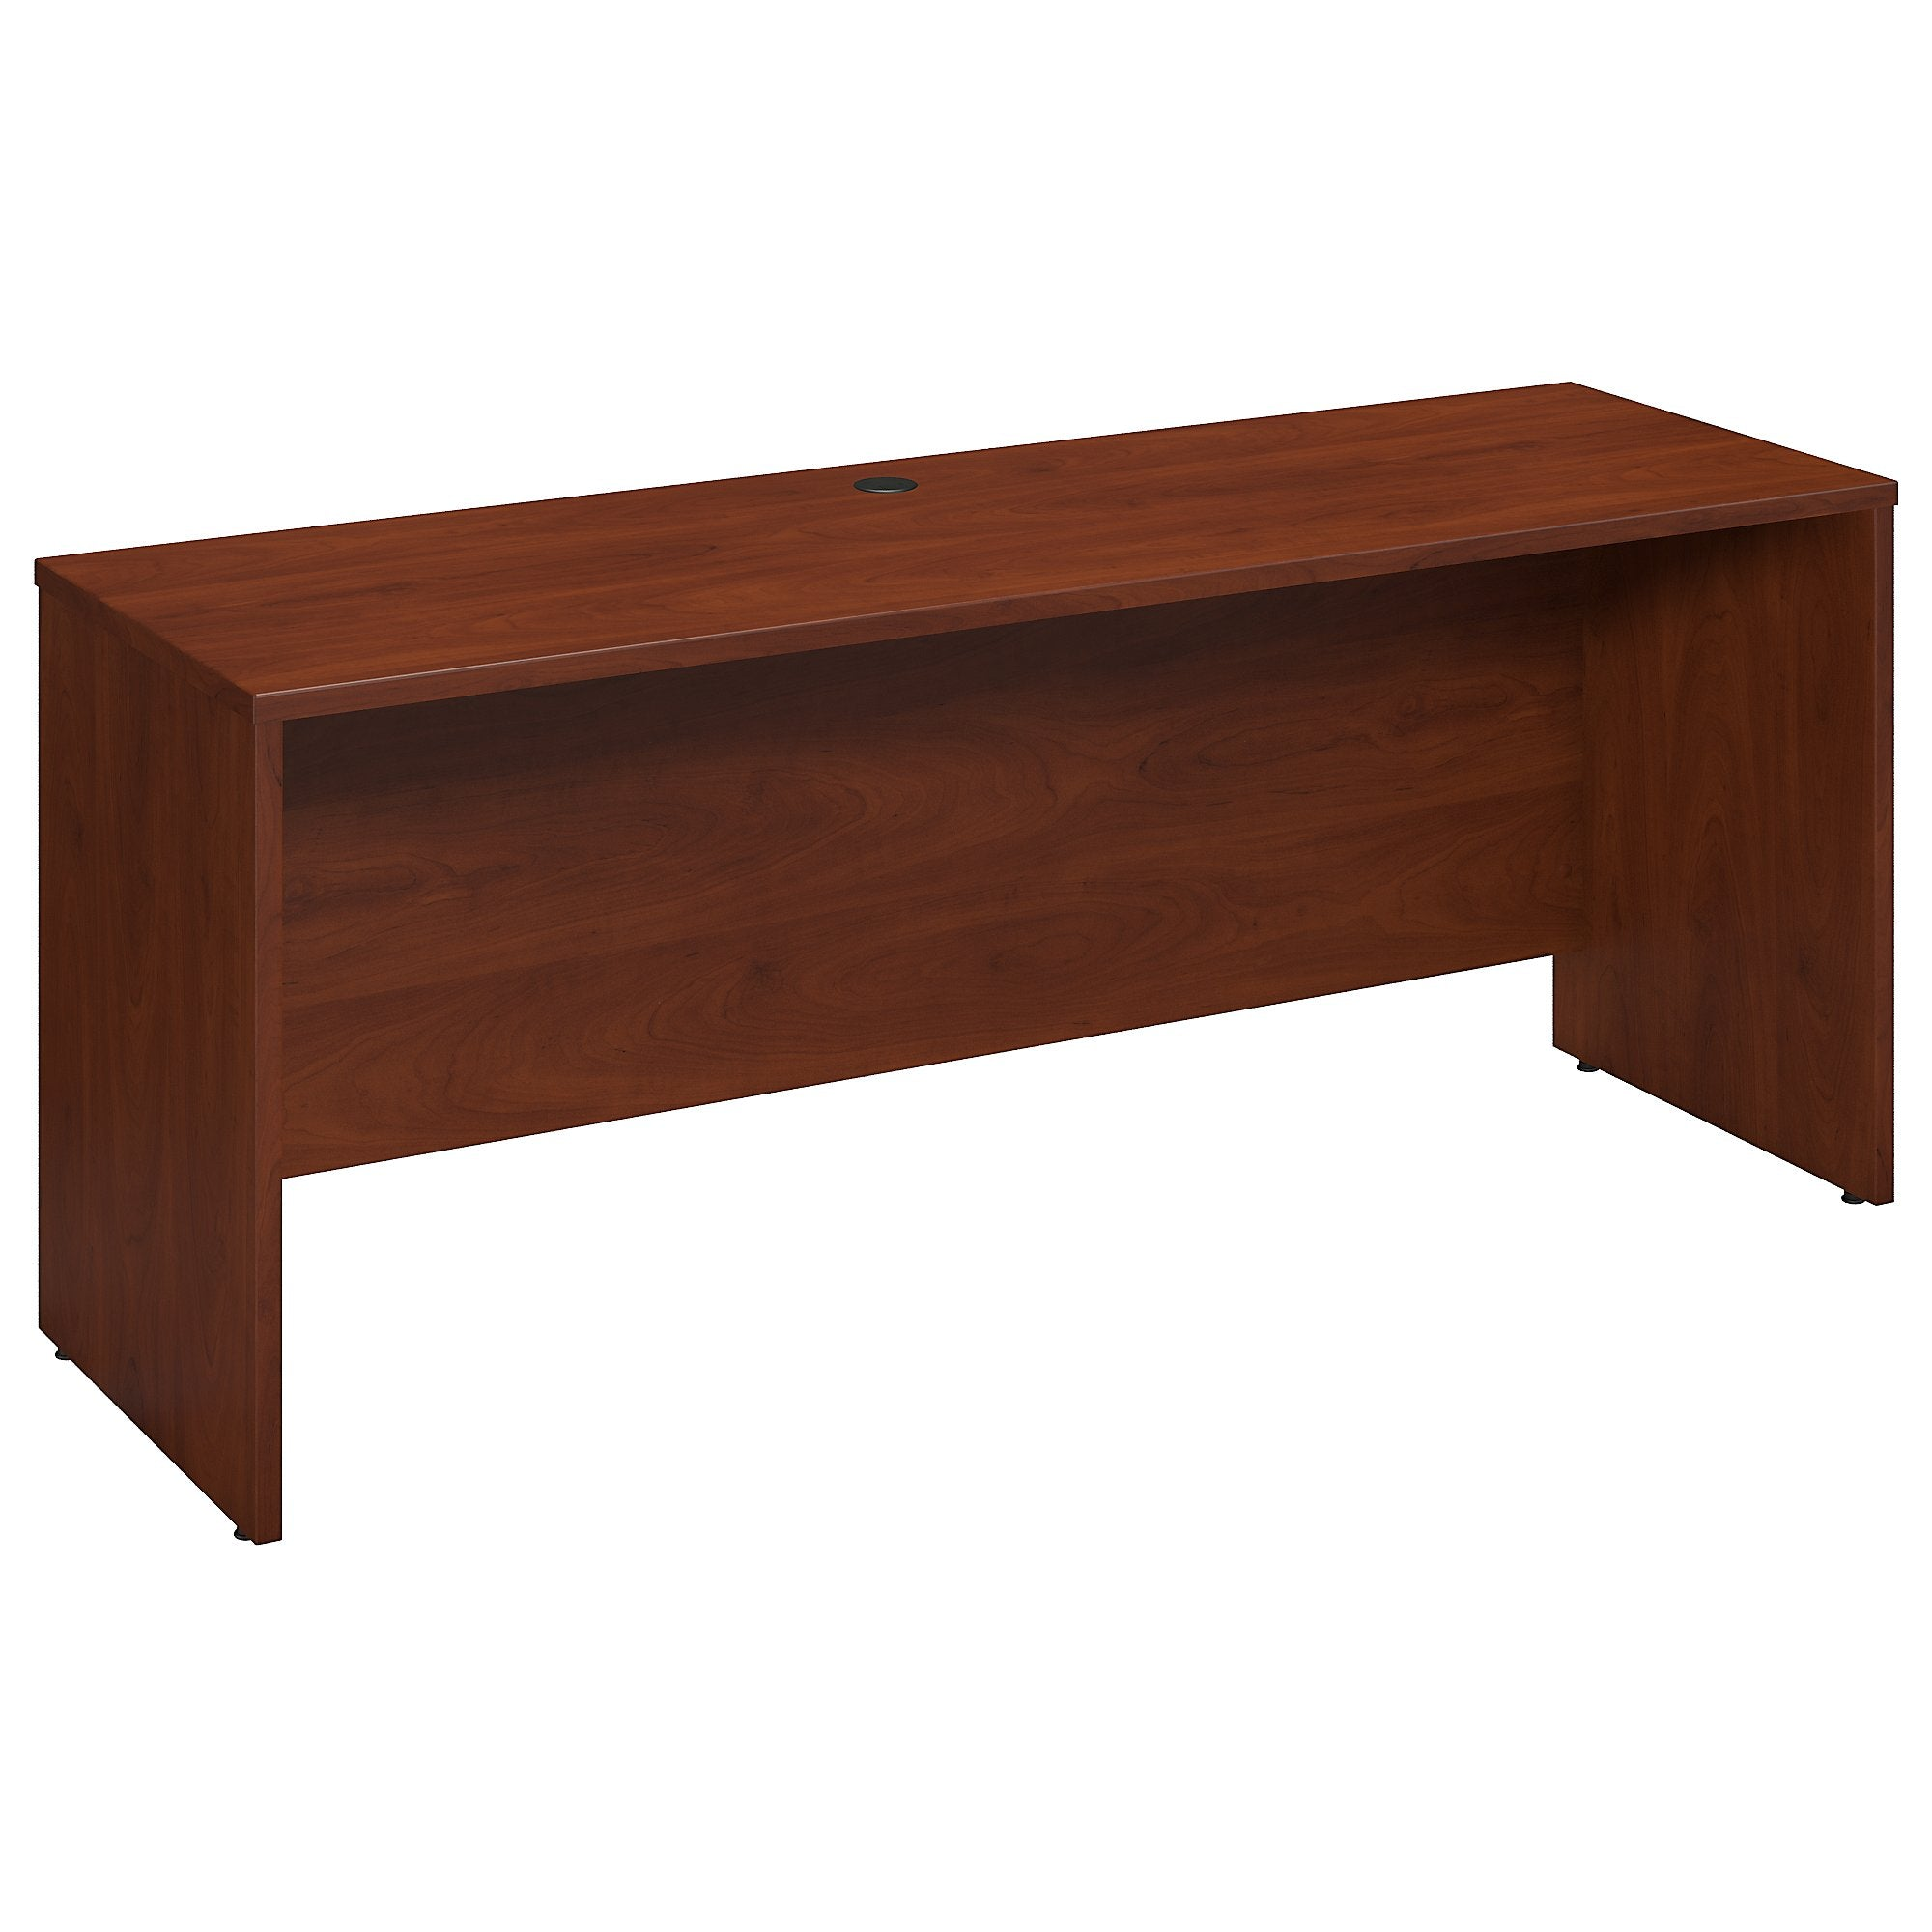 Bush Business Furniture Hansen Cherry Series C Elite 72W x 24D Desk/Credenza/Return